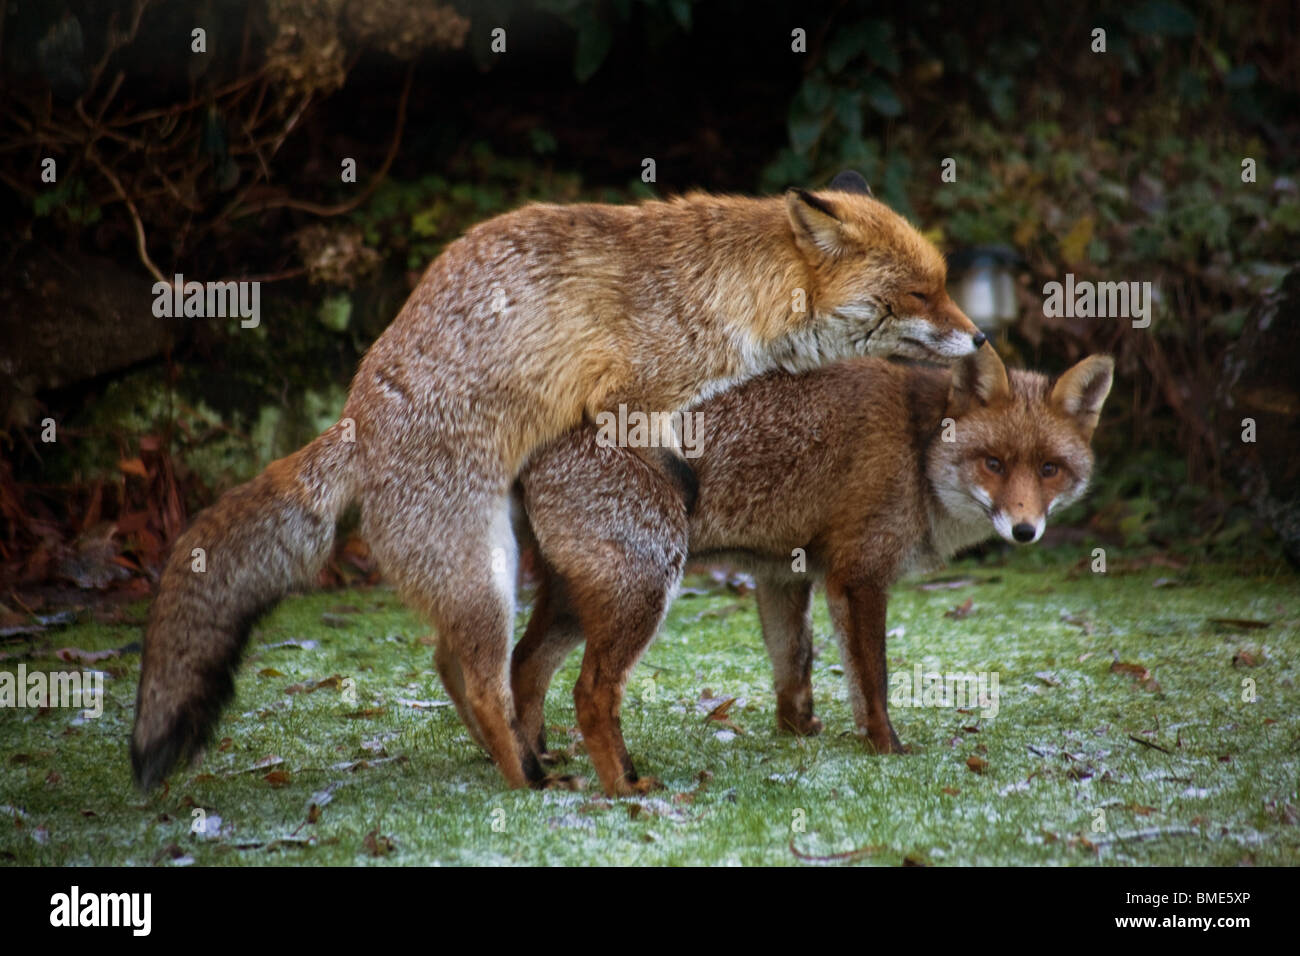 MATING FOXES KENT GARDEN UNITED KINGDOM WILDLIFE WILD ...